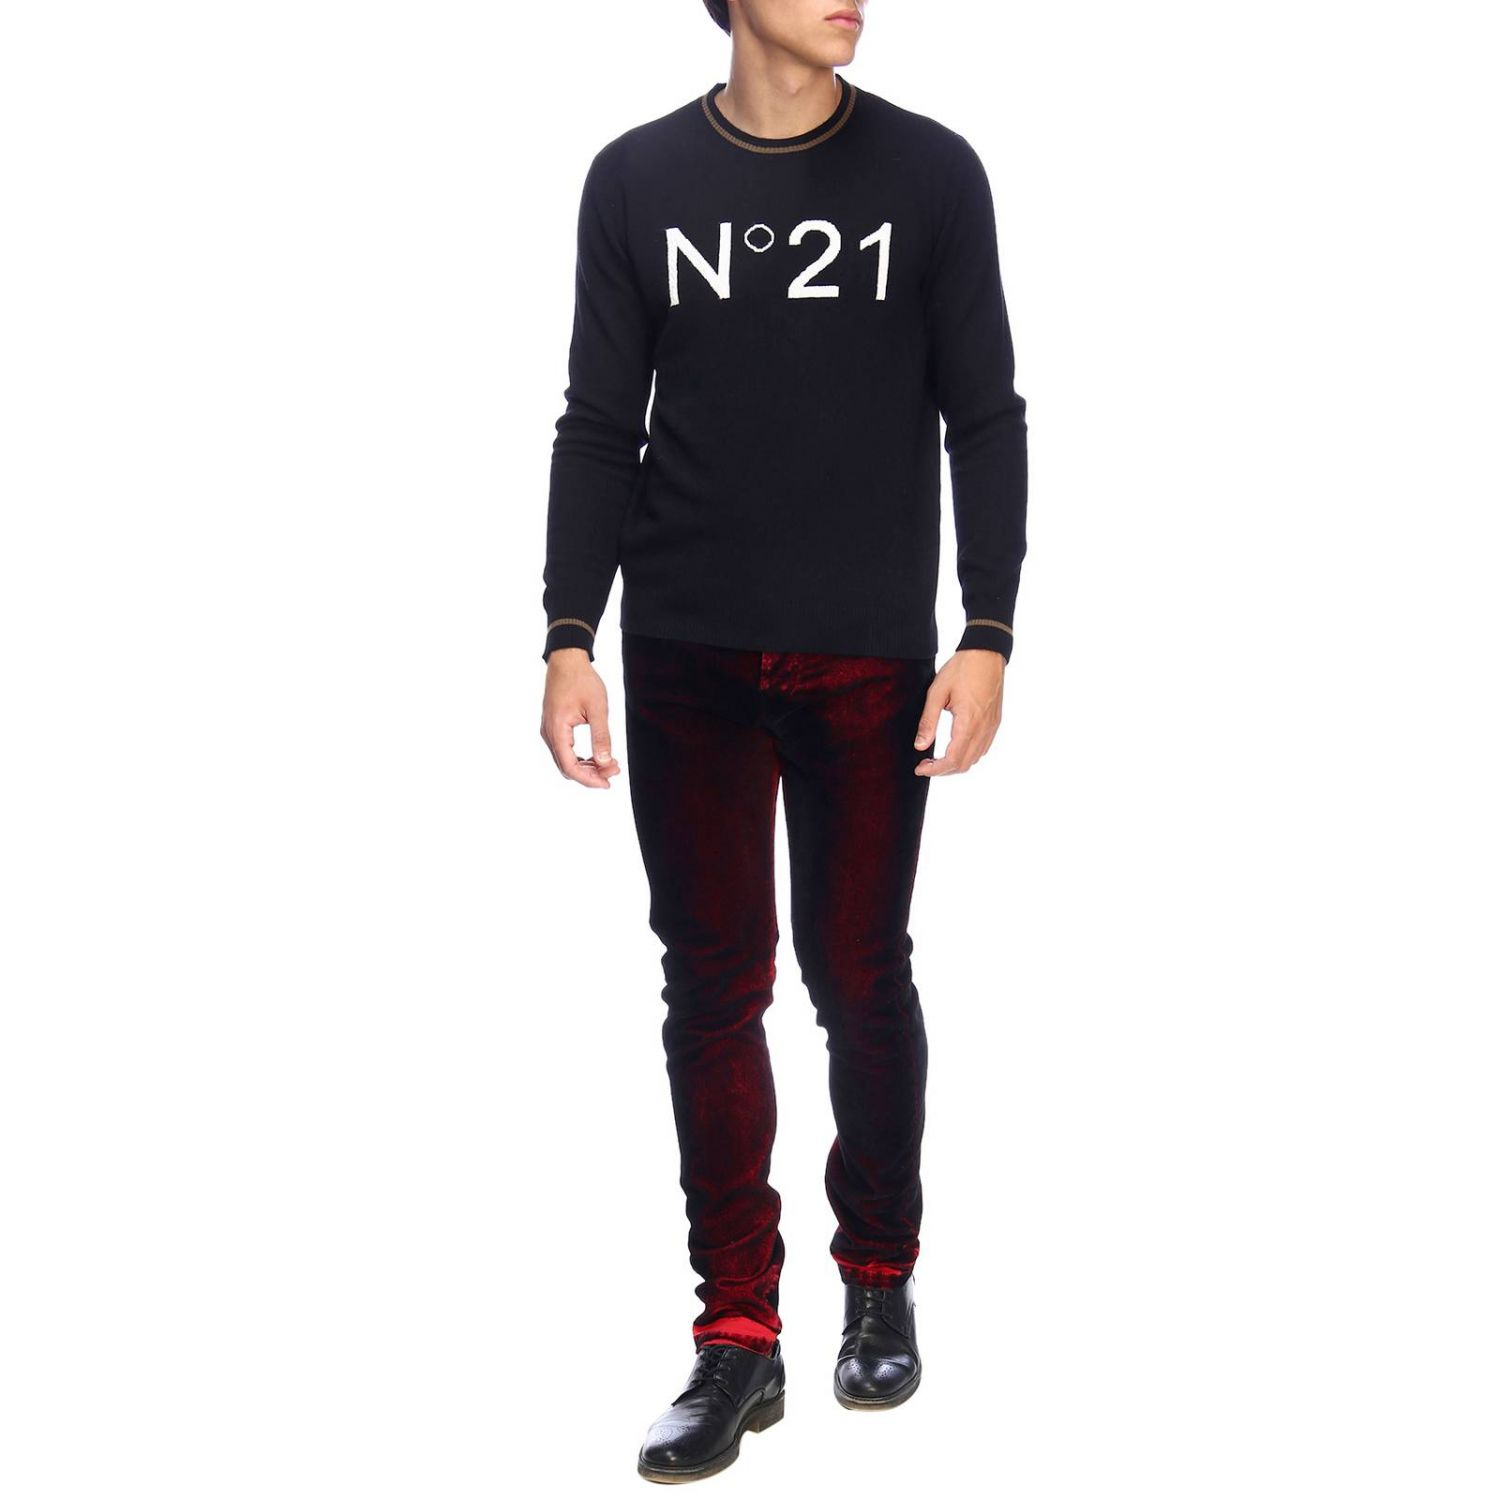 Sweater men N° 21 black 2